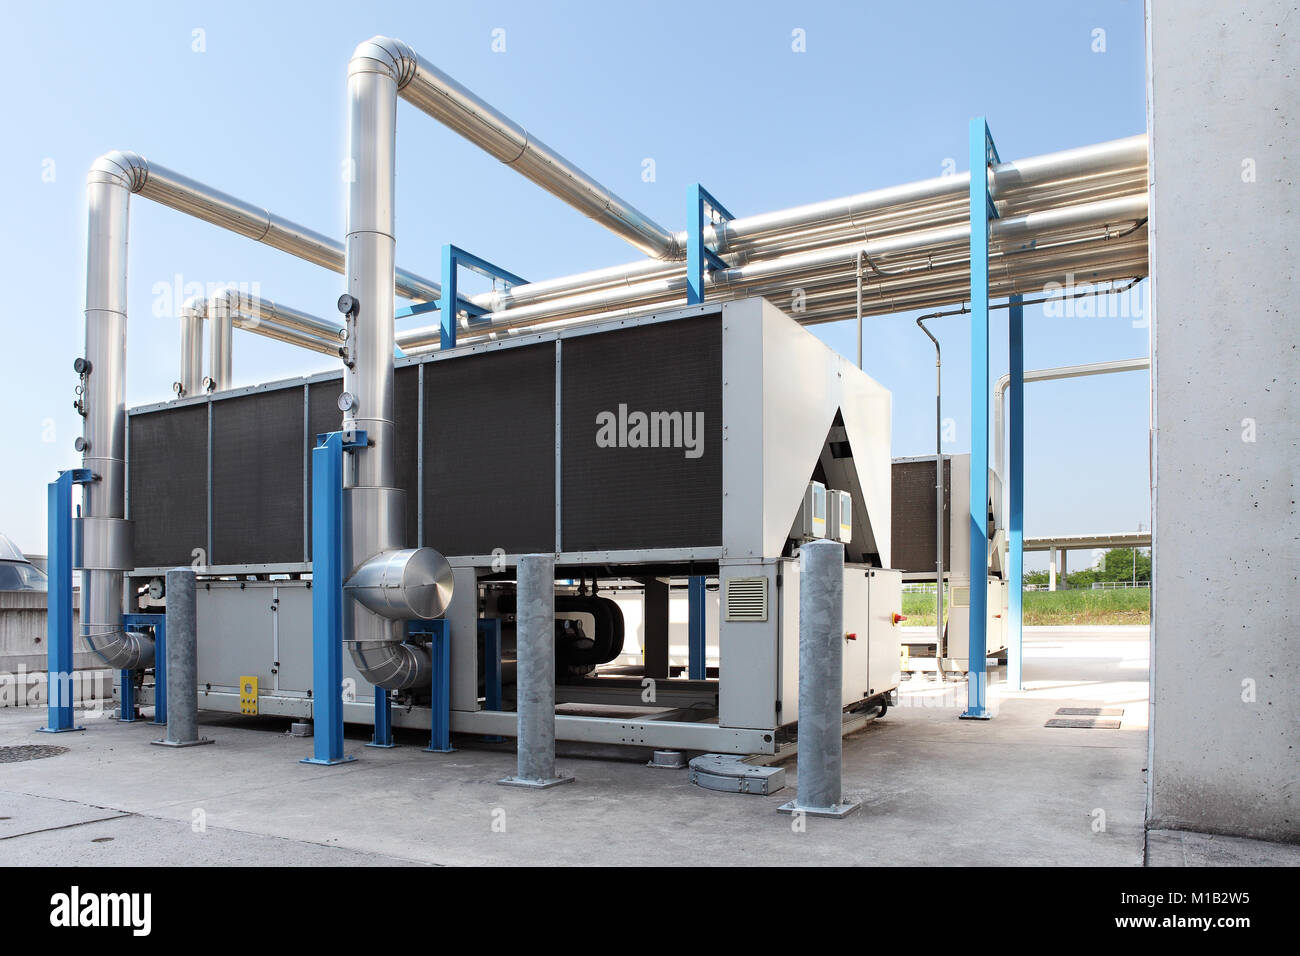 Air Conditioning Roof Ventilation Industrial System Cooling